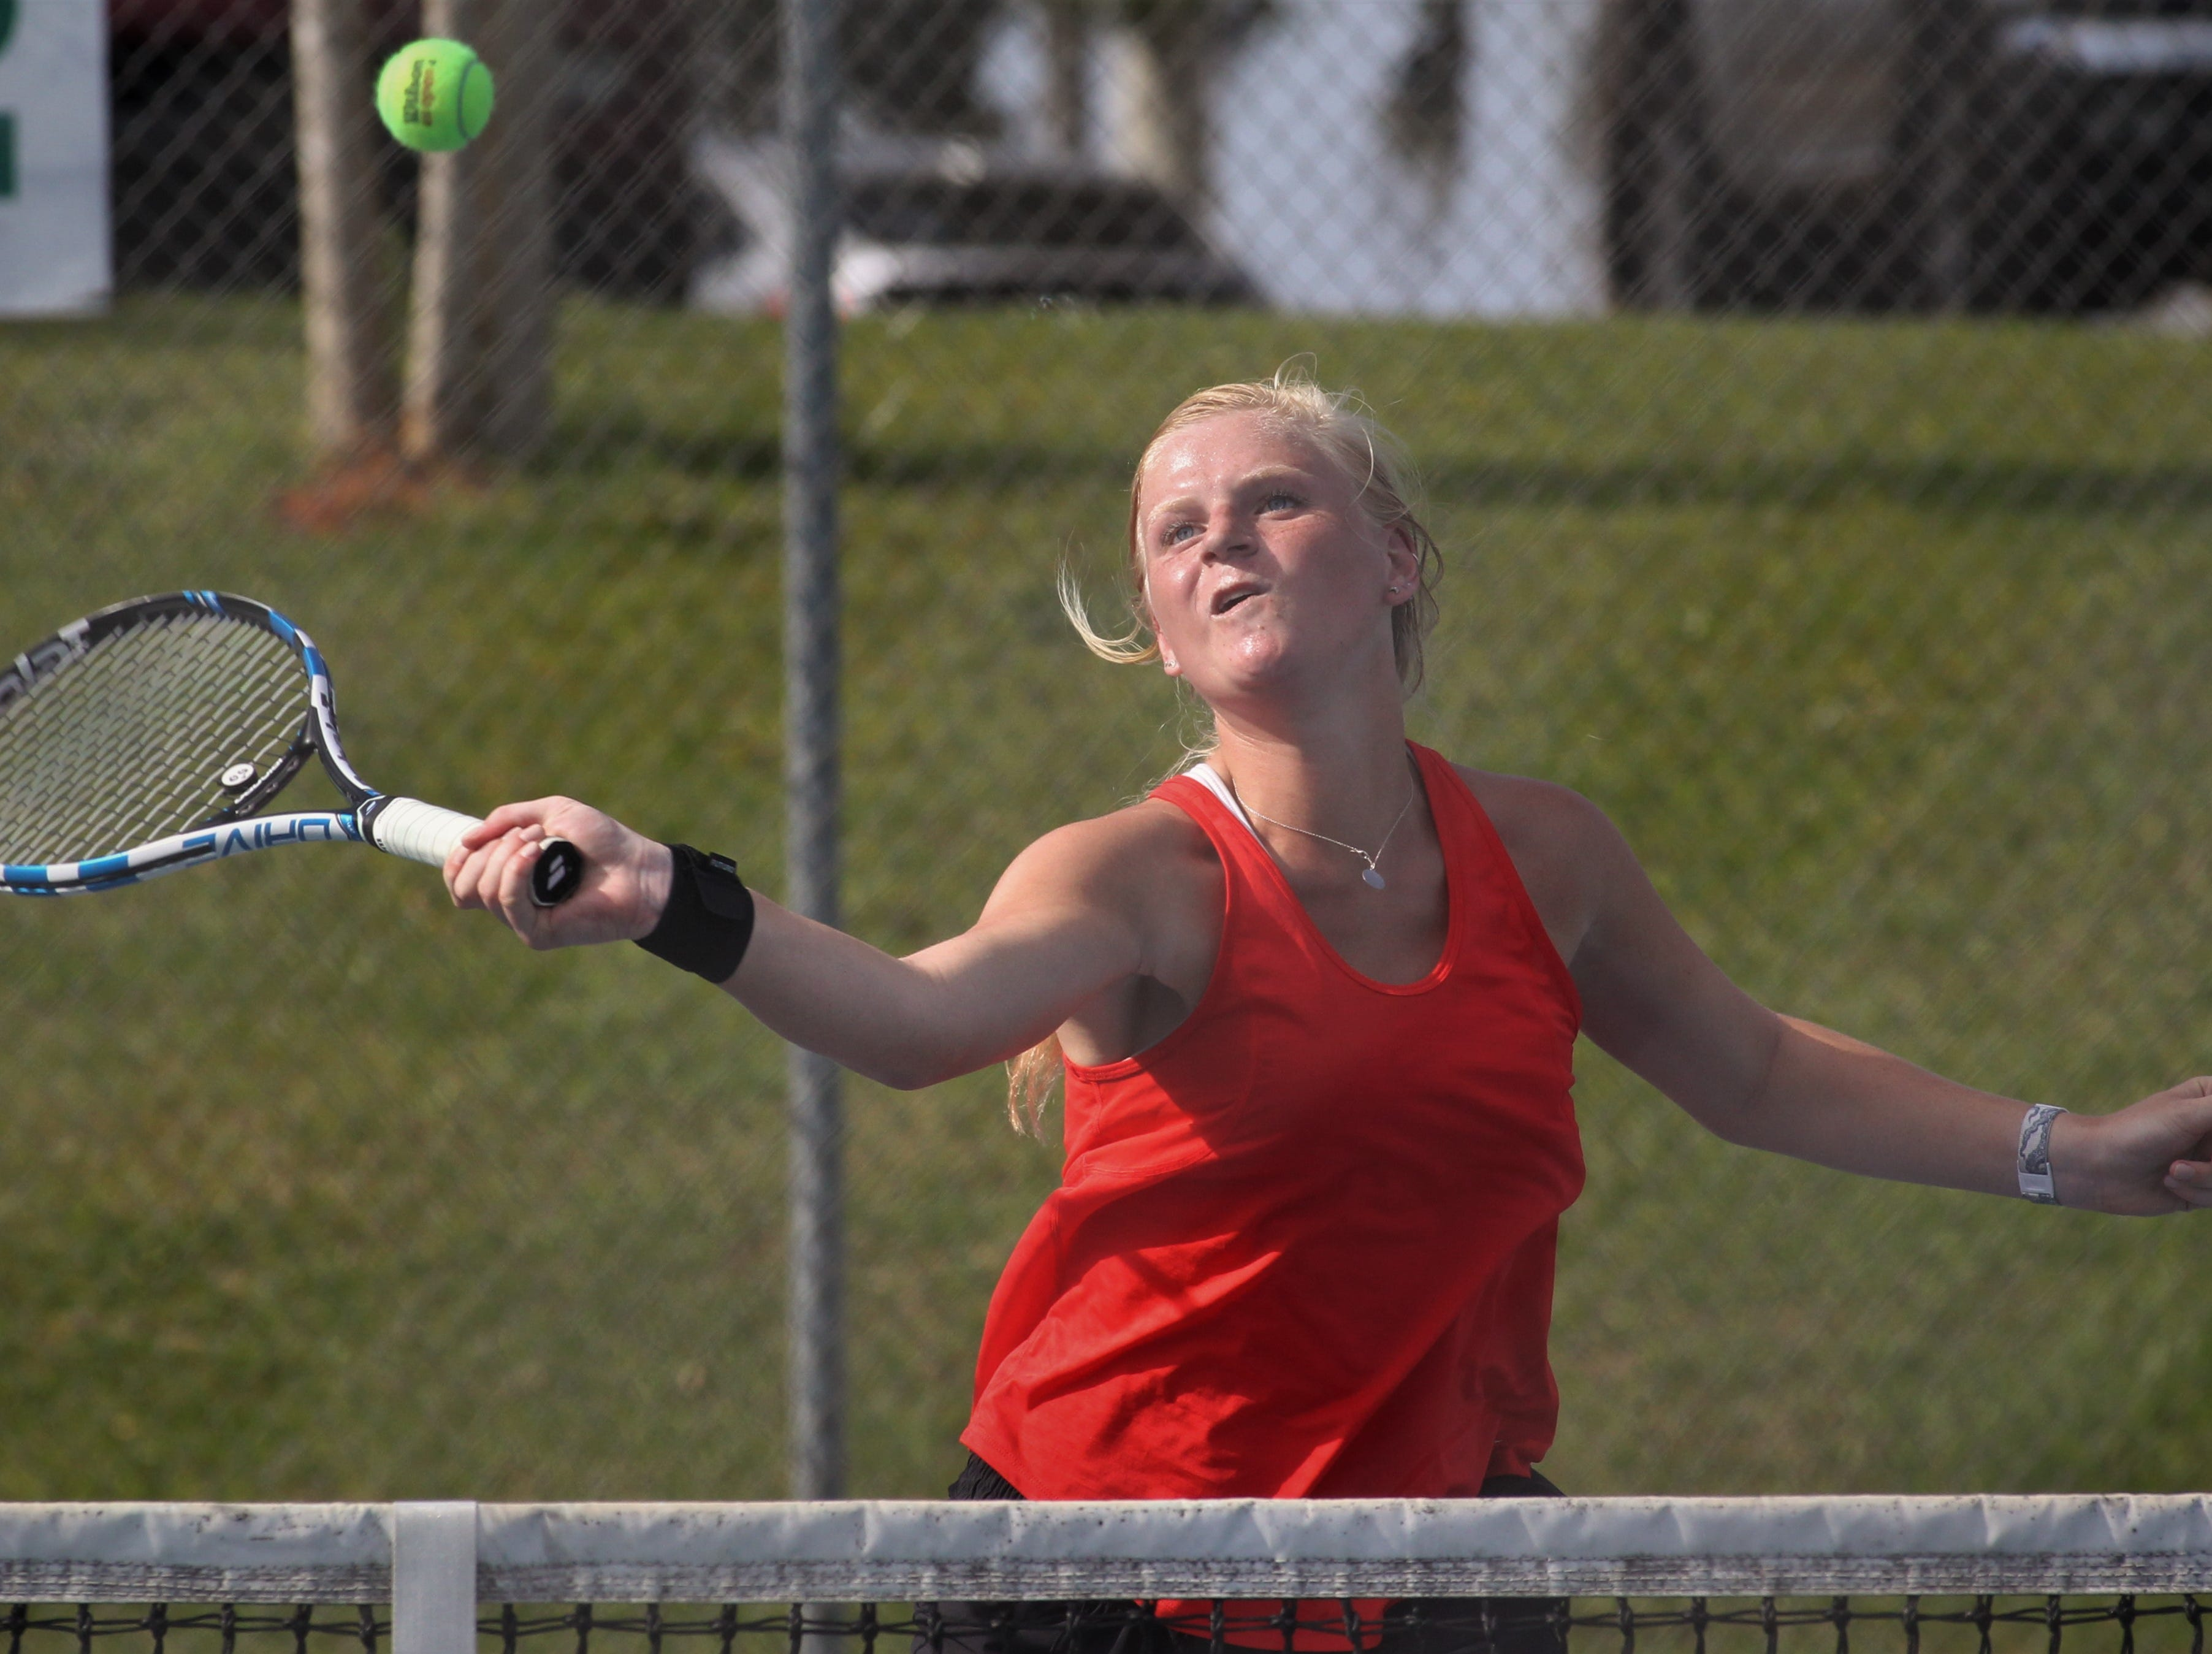 Leon senior Jules Grady plays during the boys and girls tennis city tournament at Tom Brown Park on March 13, 2019.